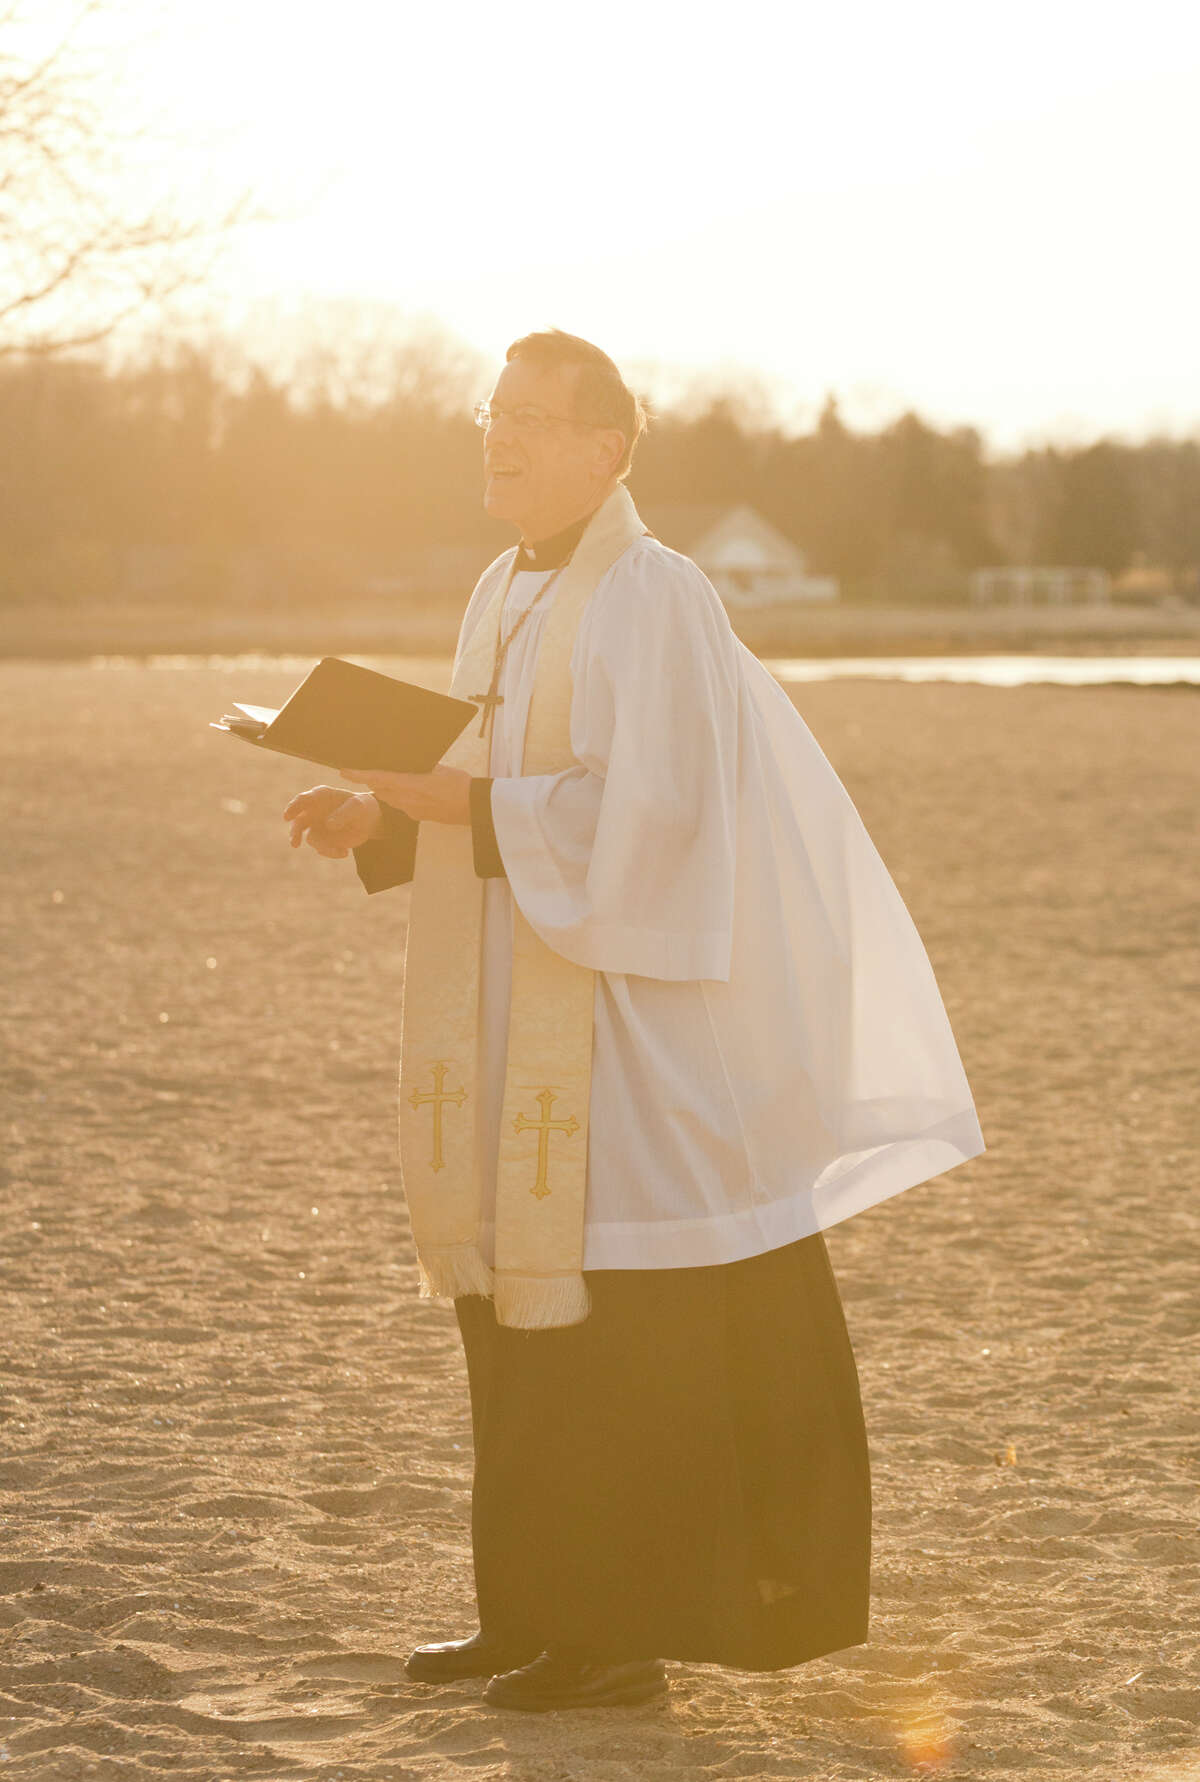 Rev. Jack Breznen, Pastor, Trinity Lutheran Church, delivers an Easter greeting during the annual sunrise Easter service at the East Pavilion at Cove Island Park in Stamford on Sunday, Apr. 20, 2014. The Easter Sunrise Service is a tradition among Christian people around the world. The Service at Cove Beach has become a local tradition, annually sponsored by Trinity Lutheran Church for the residents of Stamford, Darien, New Canaan and neighboring communities.